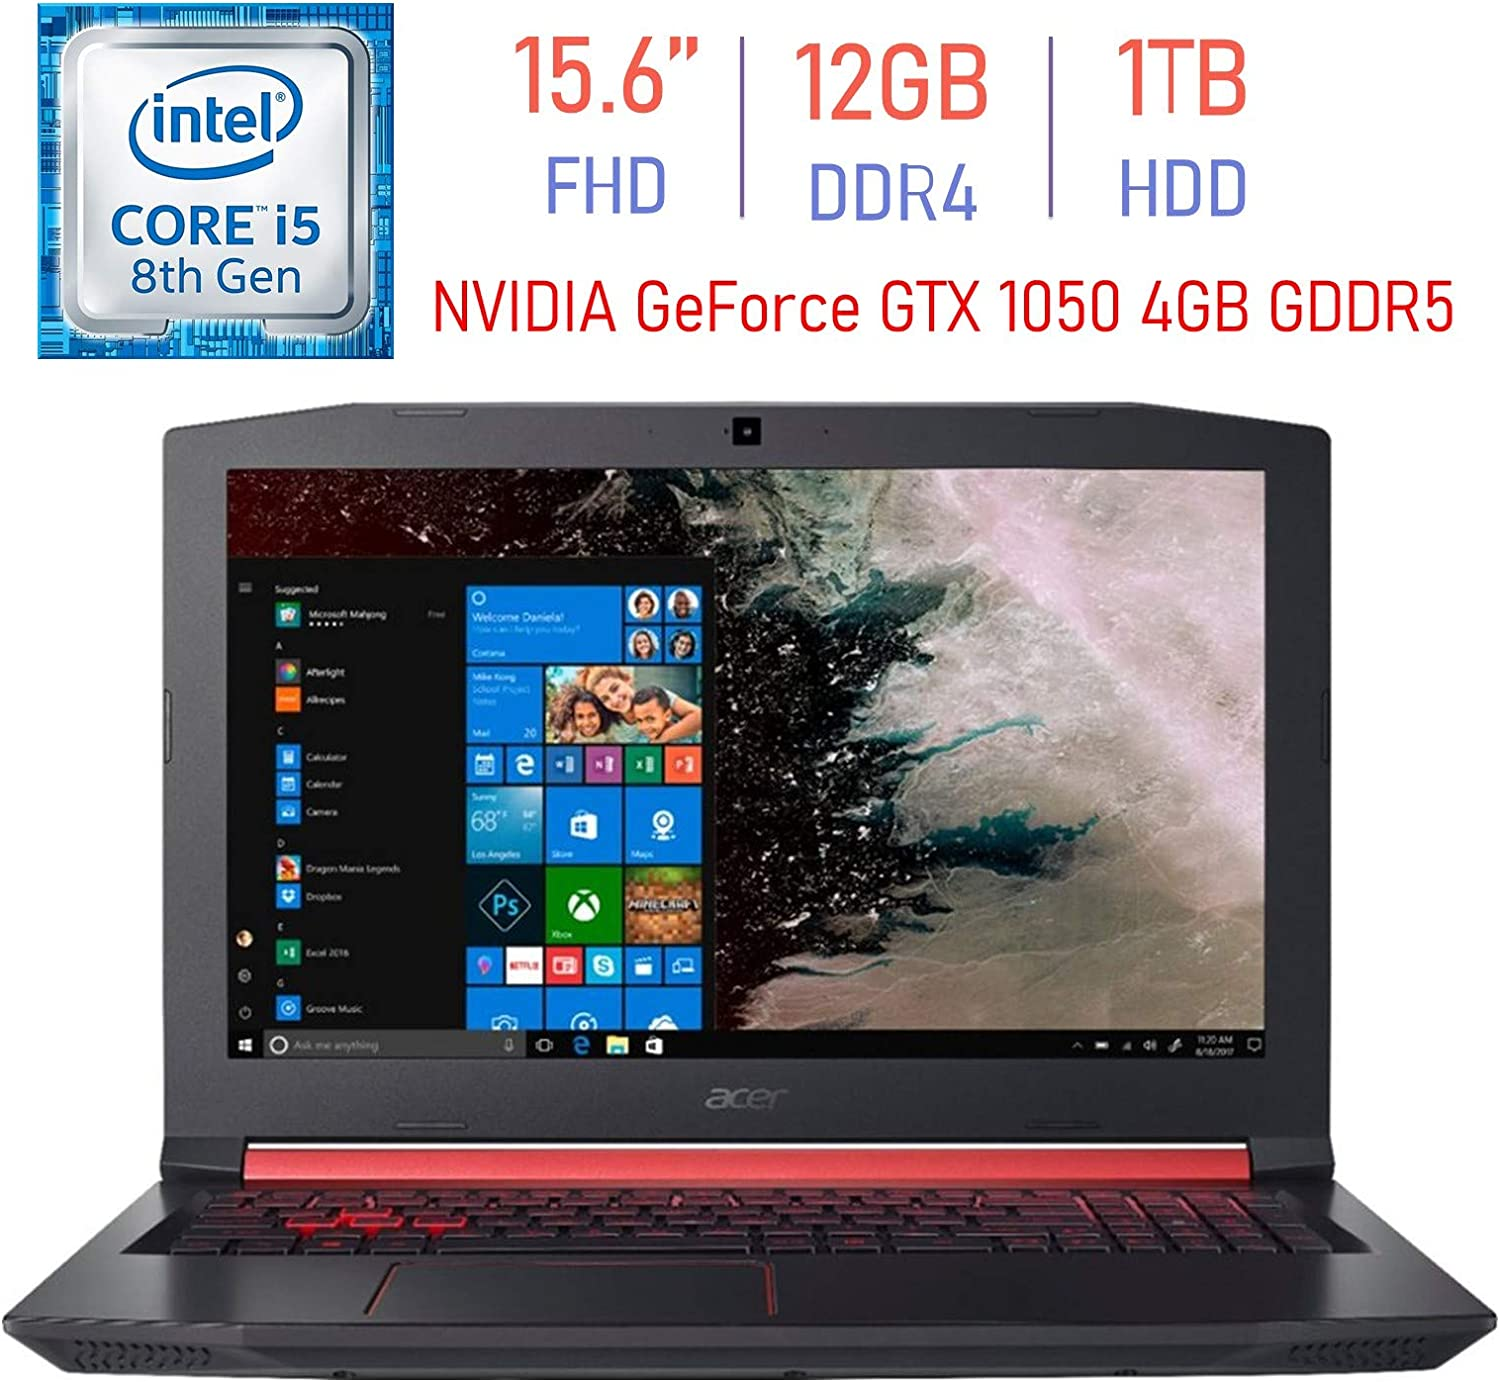 Acer Nitro 5 Gaming AN515 15.6-inch FHD(1920x1080) IPS Laptop PC, 8th Gen Intel i5-8300H (Up to 4.0GHz), NVIDIA GeForce GTX 1050 4GB GDDR5, 12GB RAM, 1TB HDD, Backlit Keyboard, Bluetooth, Windows 10